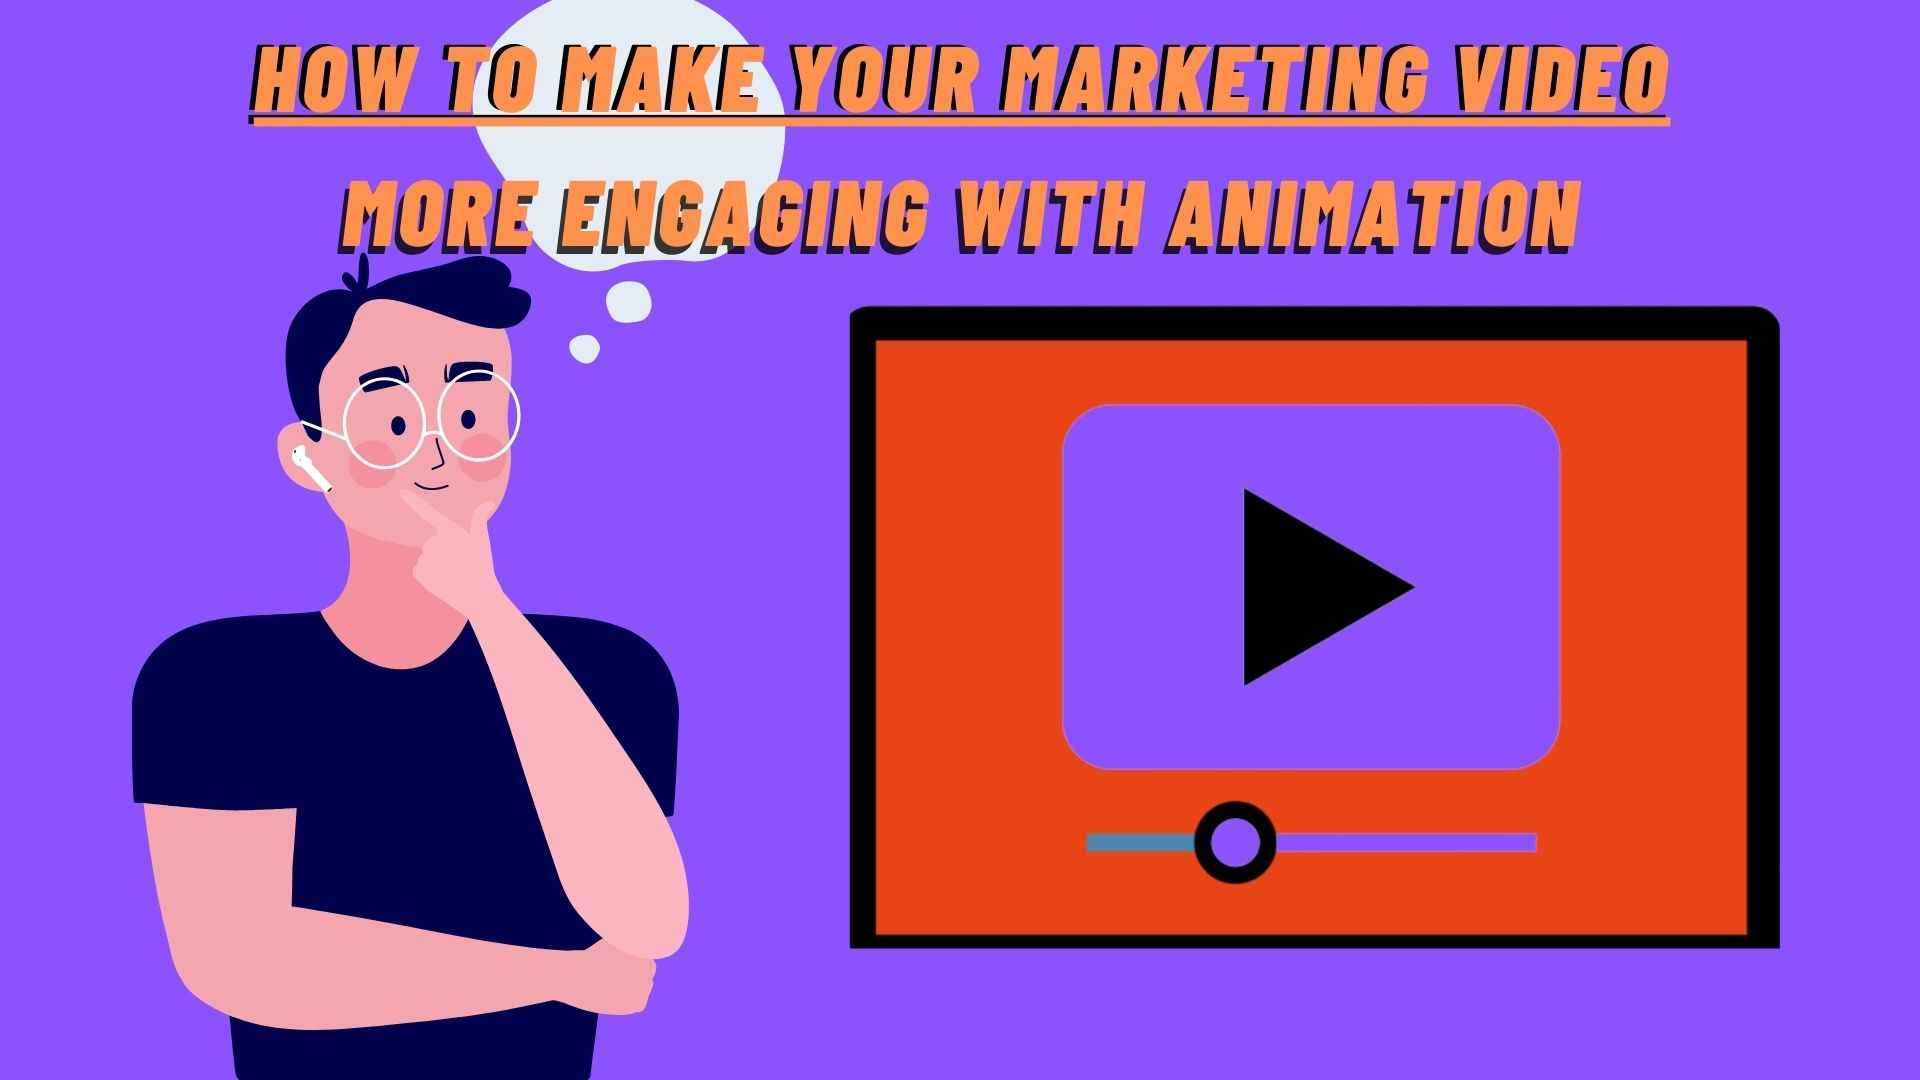 Cool marketing animated video